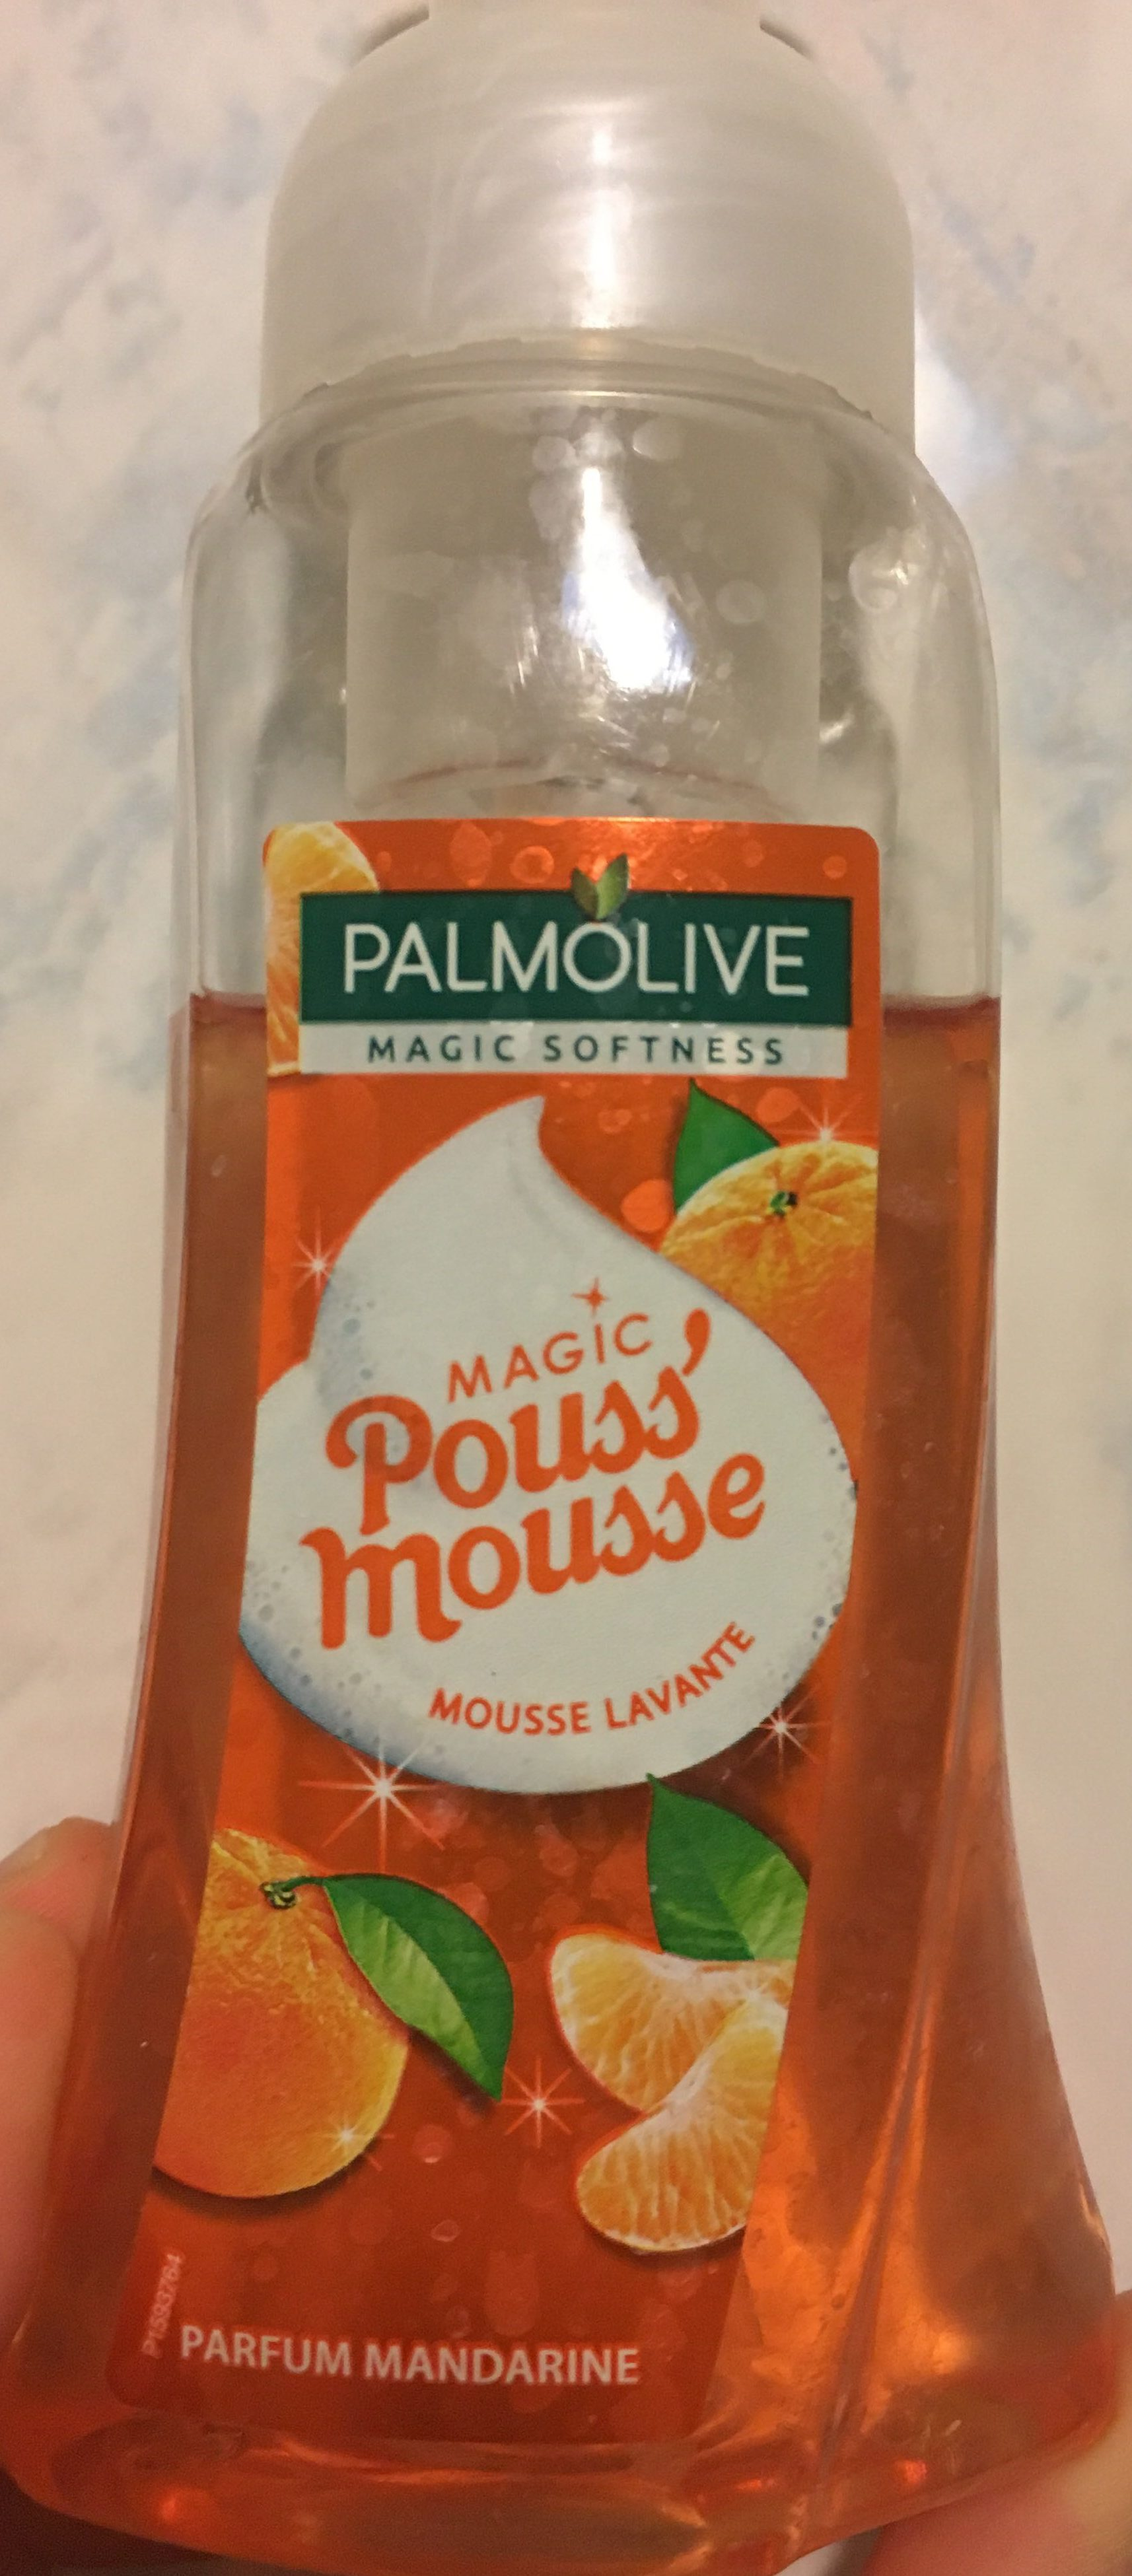 Magic Pouss'Mousse parfum Mandarine - Produit - fr